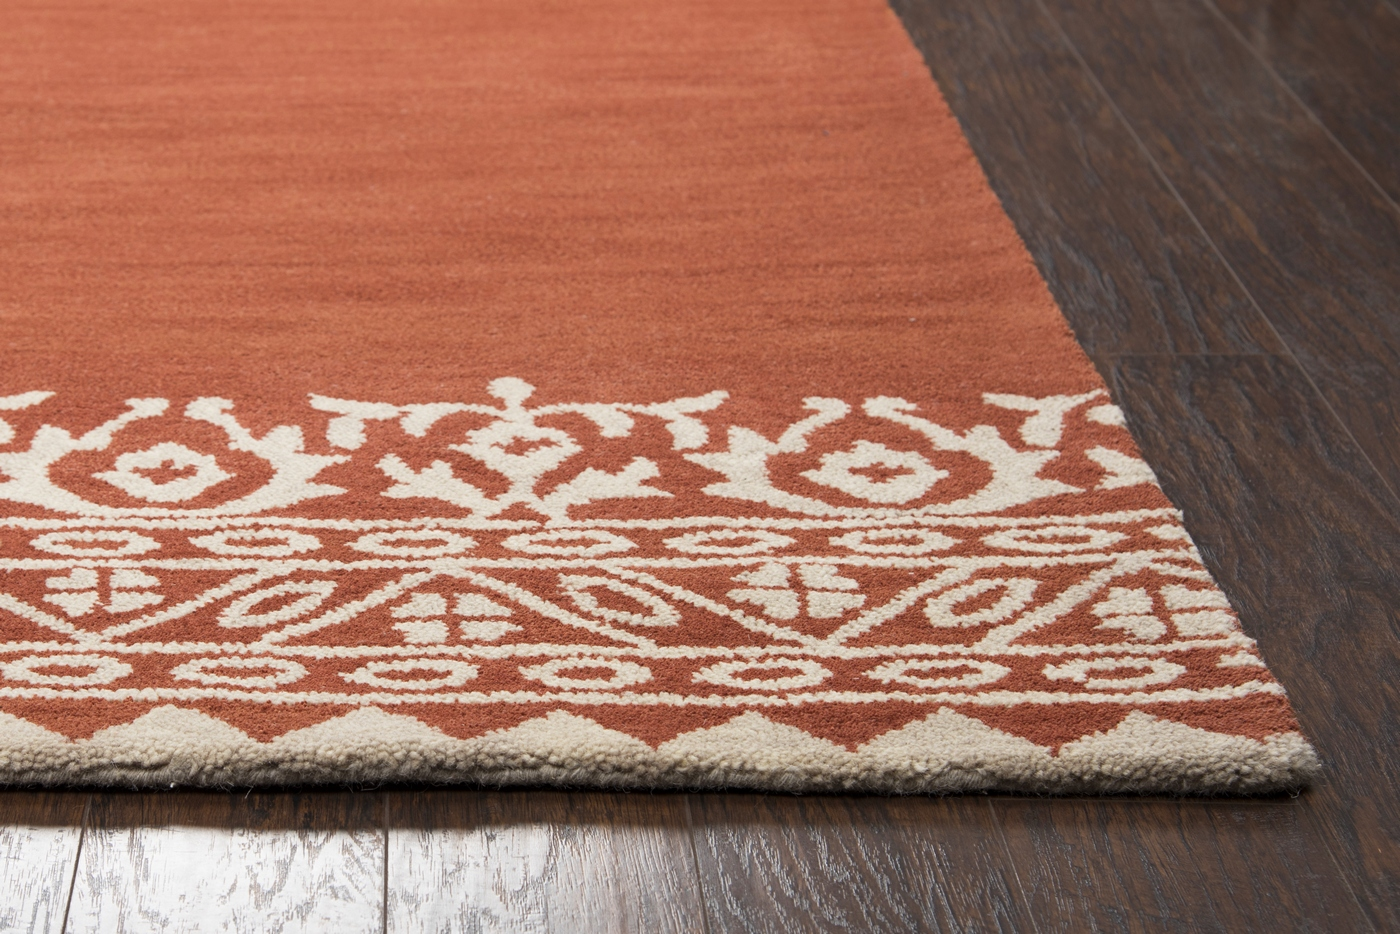 Marianna Fields Floral Motif Border Wool Area Rug In Brown